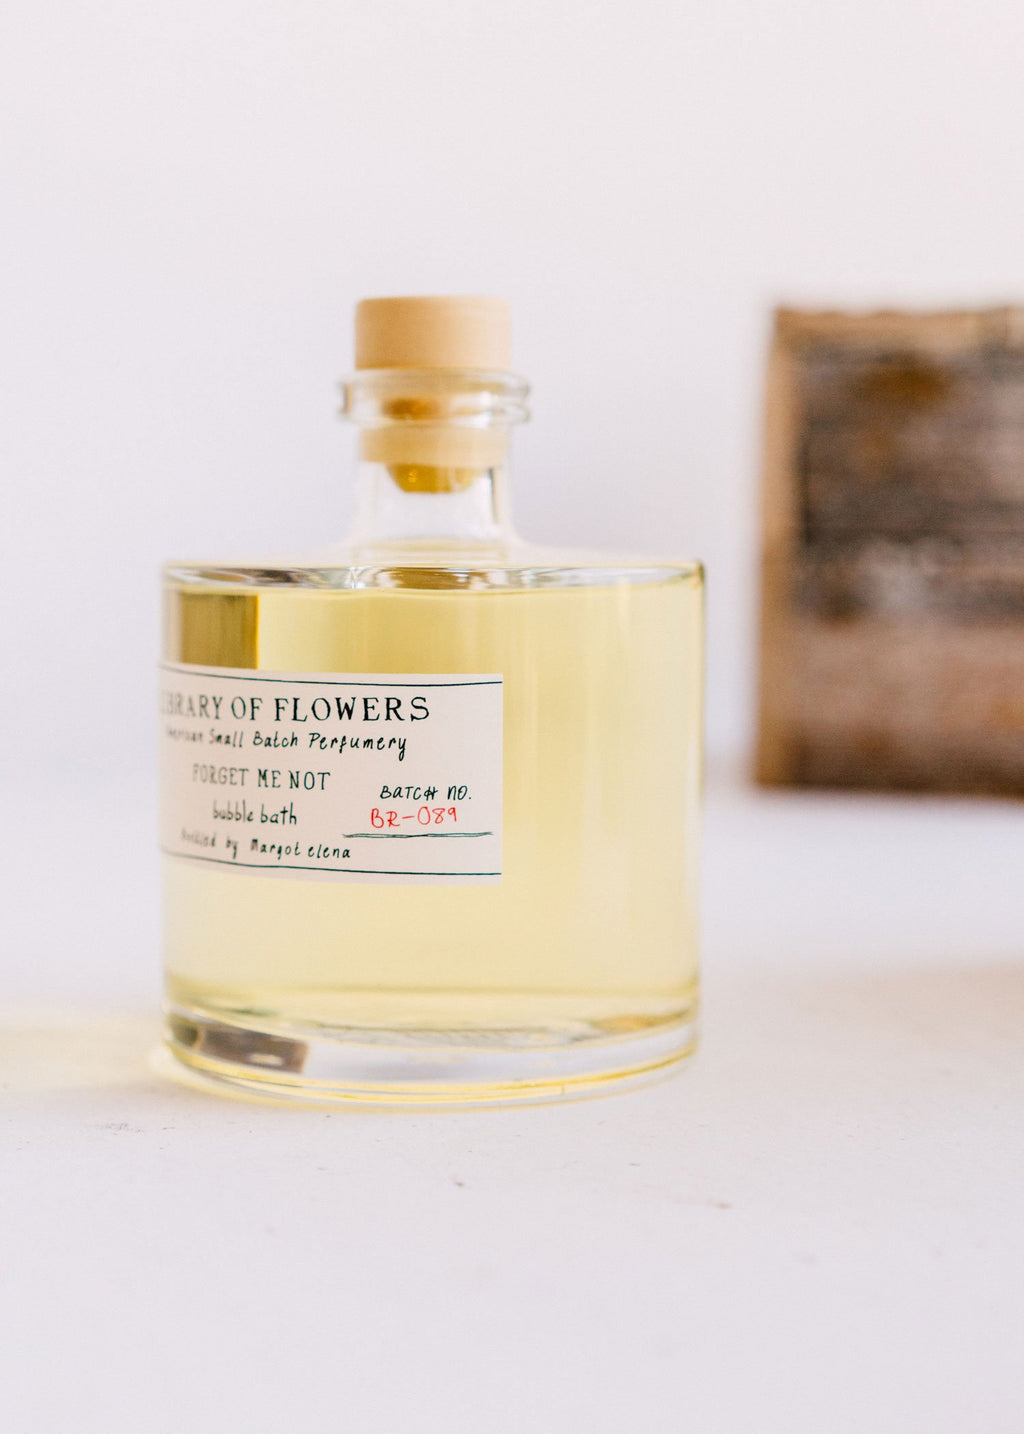 LIBRARY OF FLOWERS | Forget Me Not Bubble Bath